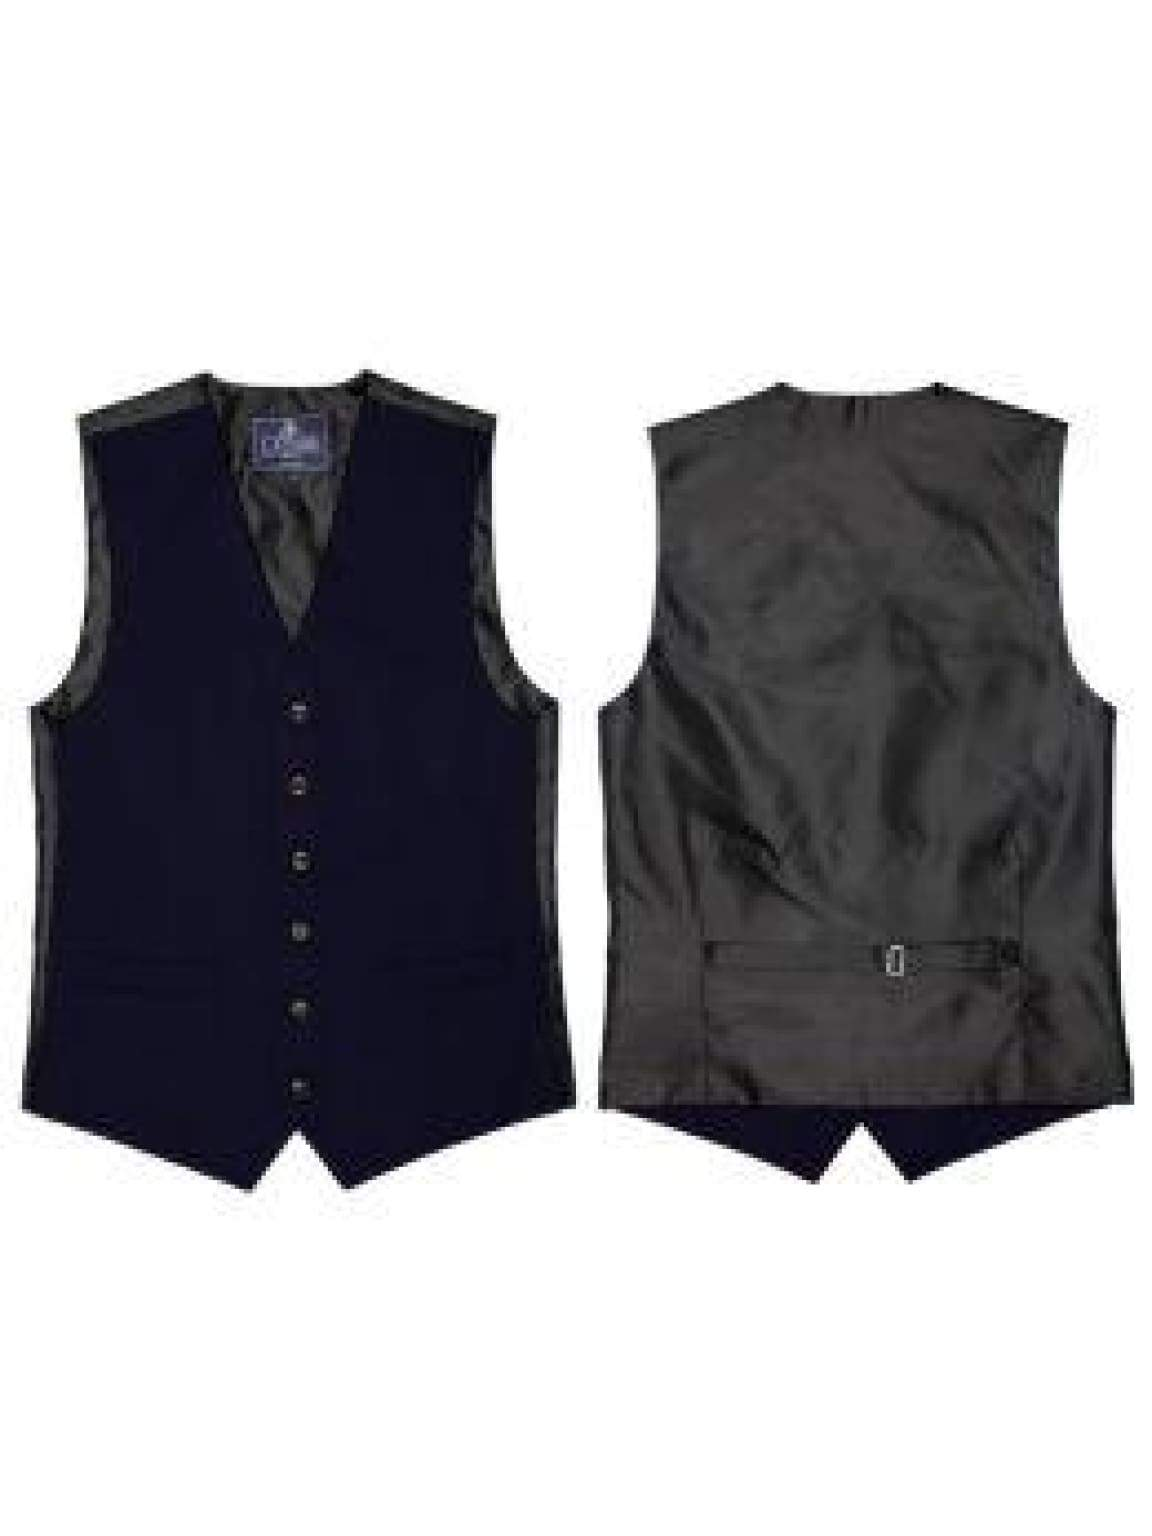 L A Smith Navy Plain Country Waistcoat - Suit & Tailoring